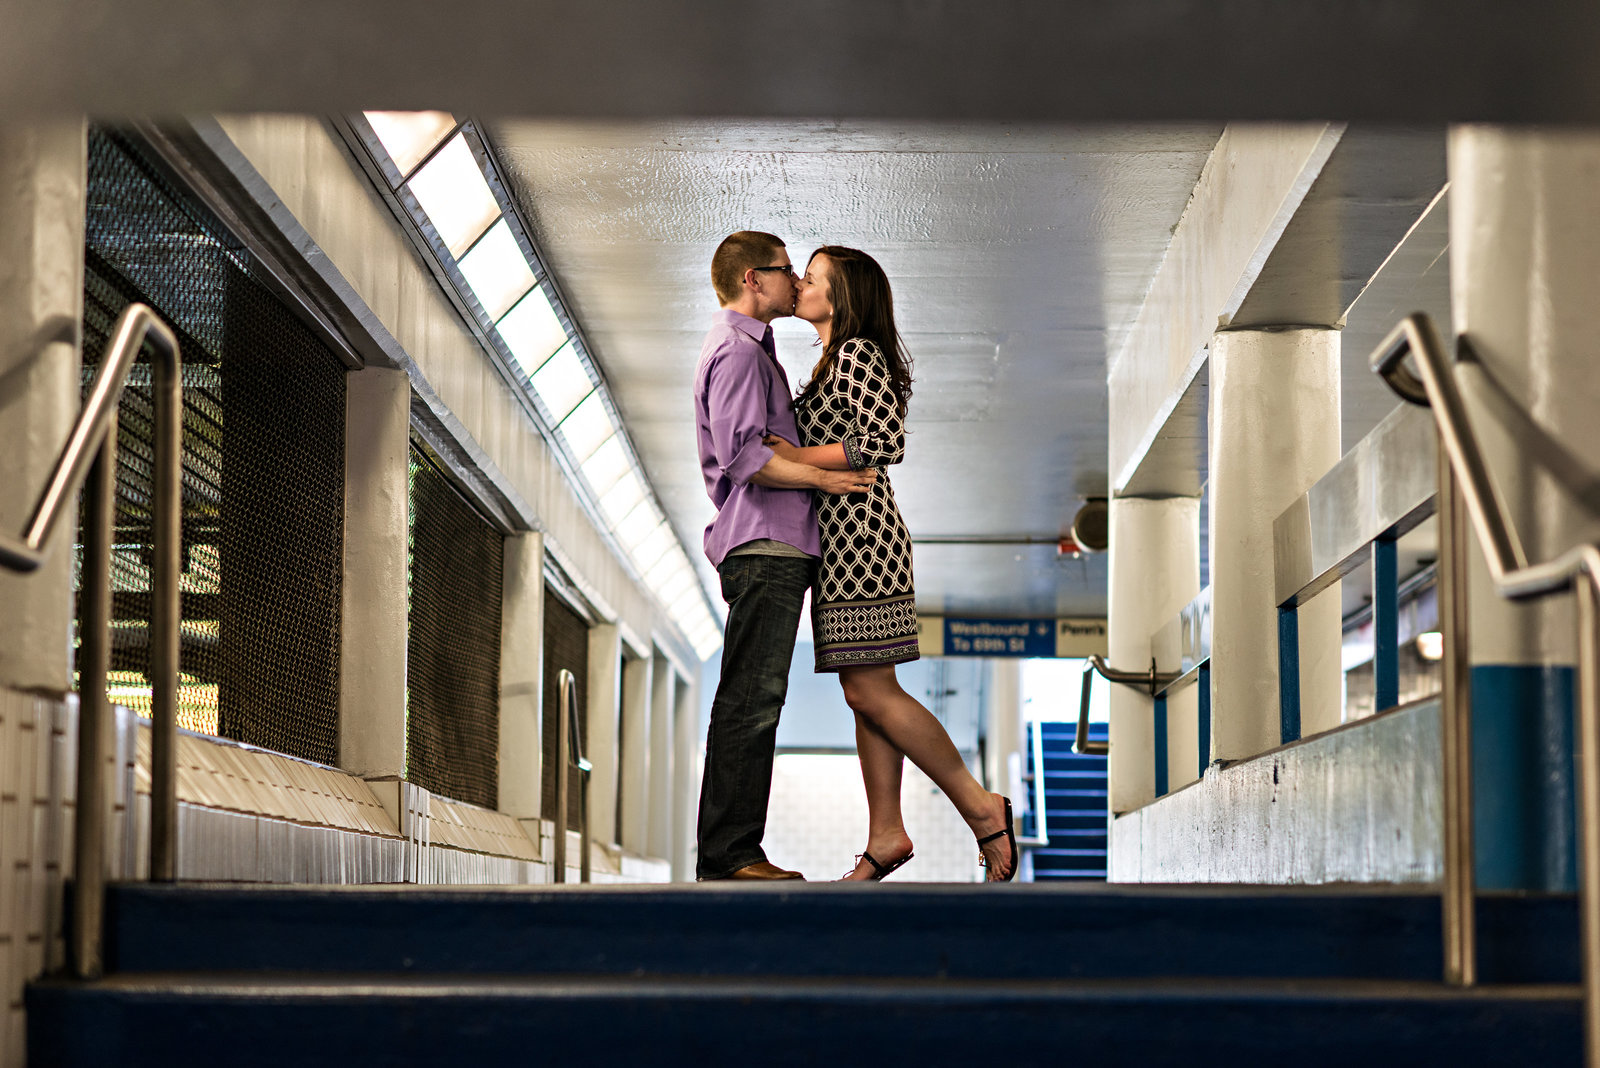 A bride to be kisses her fiance in the subway in Philly.